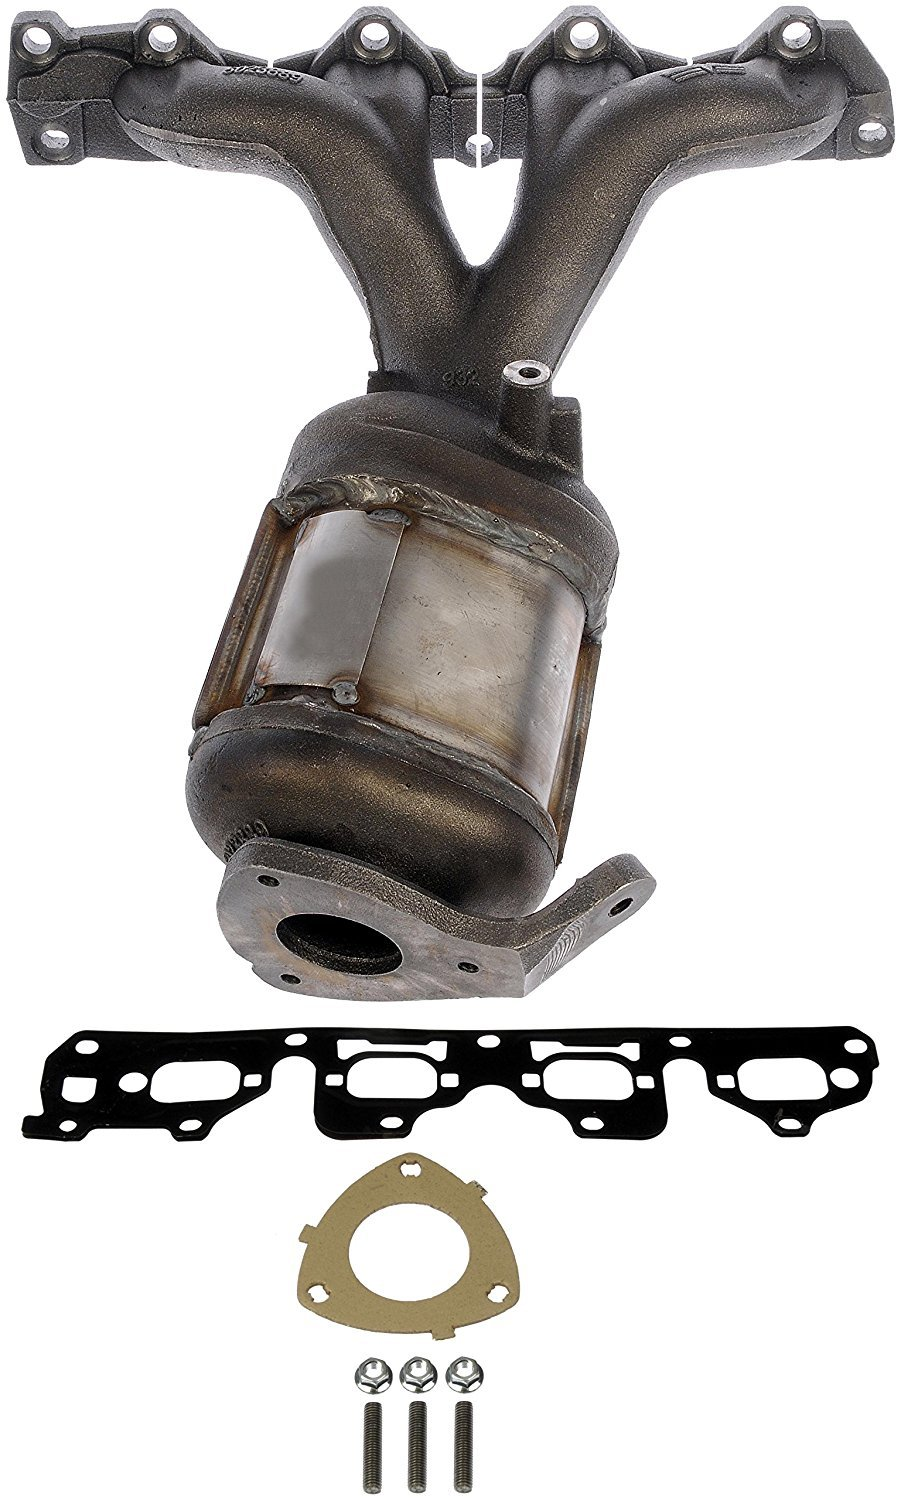 Fits 674-889 Exhaust Manifold with Integrated Catalytic Converter 2004 - 2008 Chevy Malibu, 2006 - 2008 Pontiac G6, 2007 - 2008 Saturn Aura (Non-CARB Compliant) Auto Express